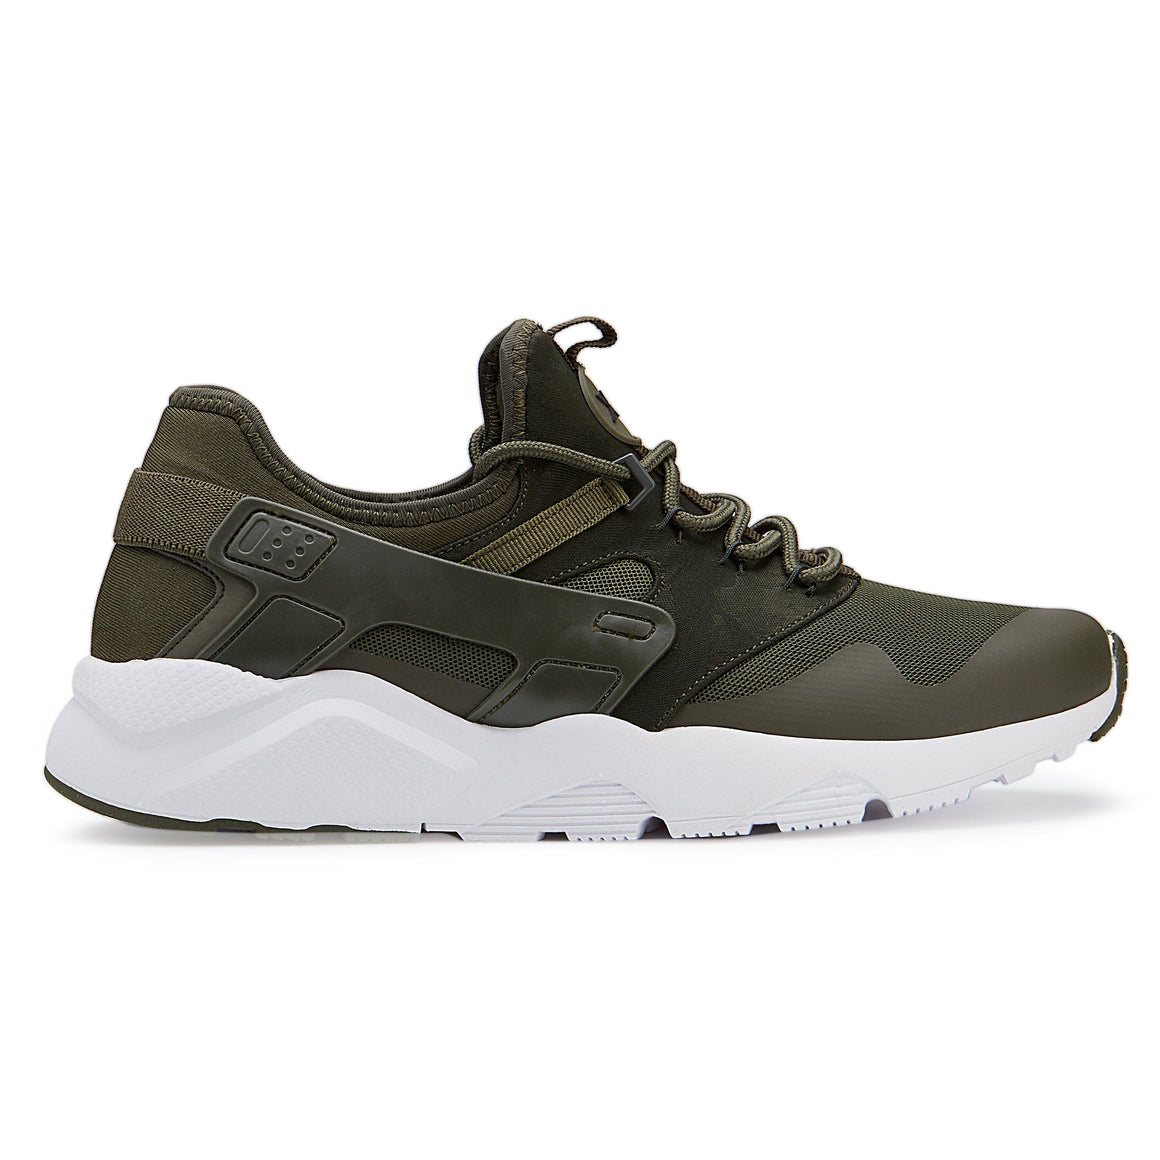 Xray Men's The Makalu Athletic Lowtop Sneakers ARMY GREEN